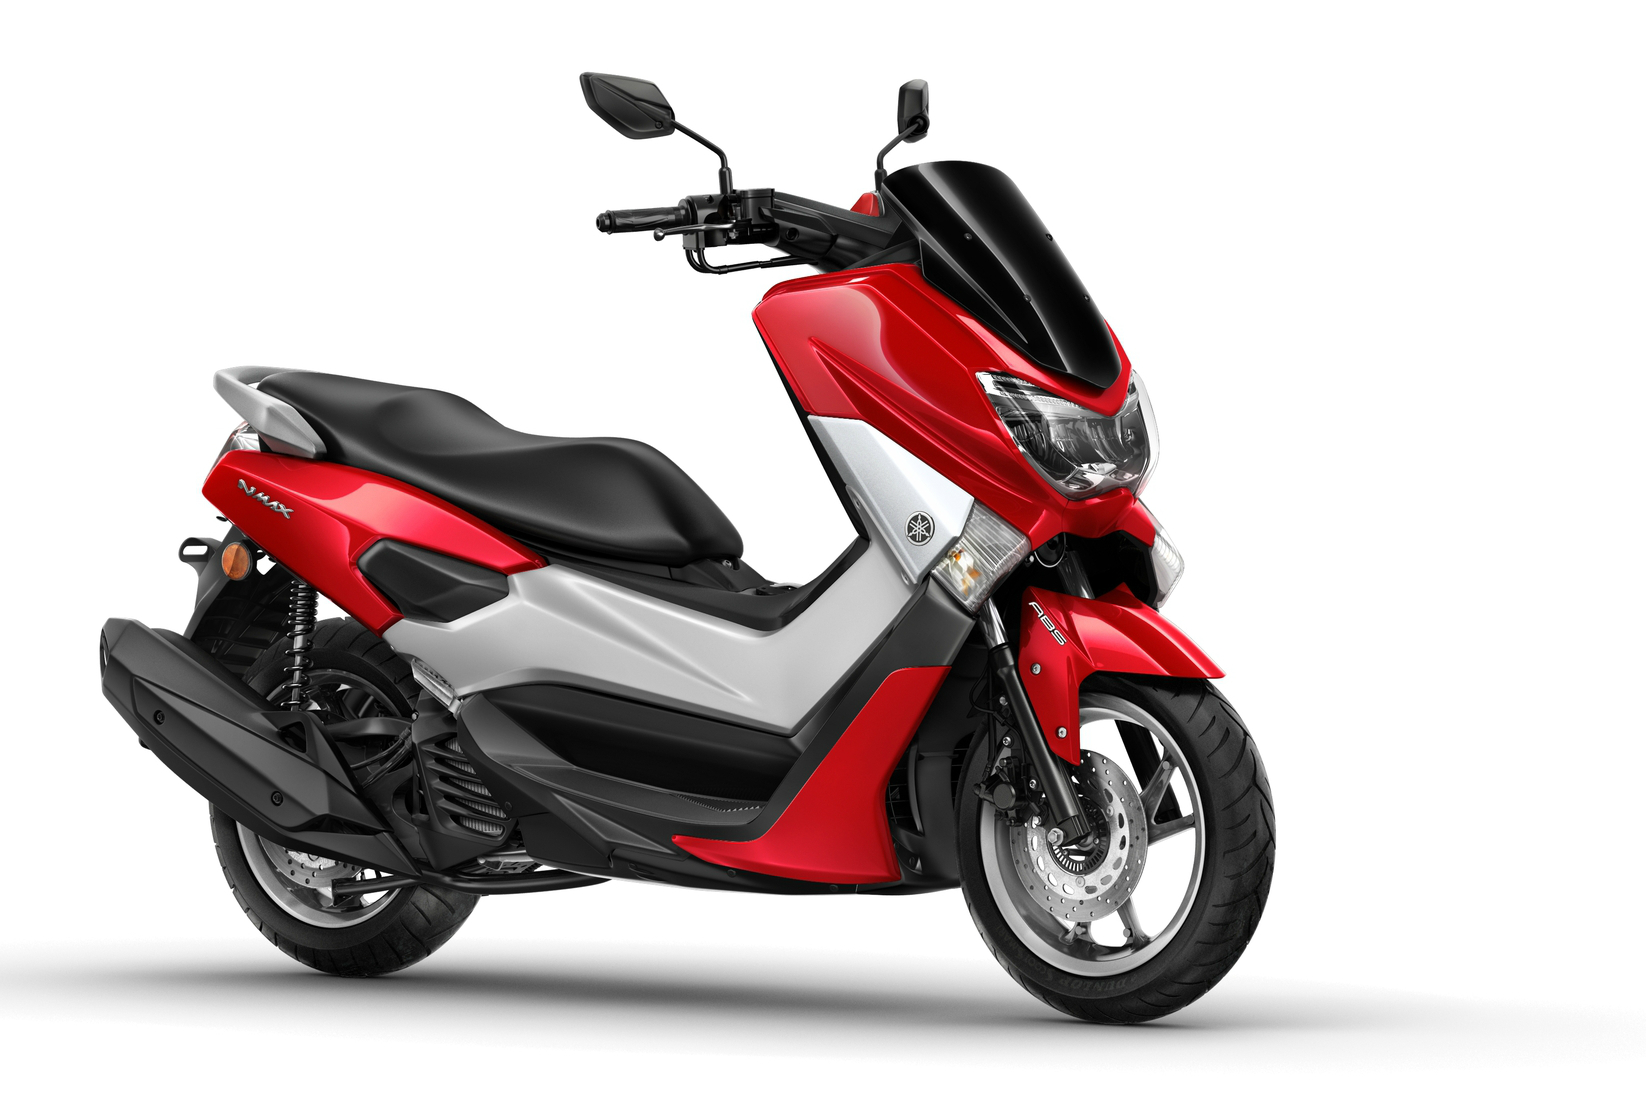 New Yamaha NMAX boasts 129mpg economy